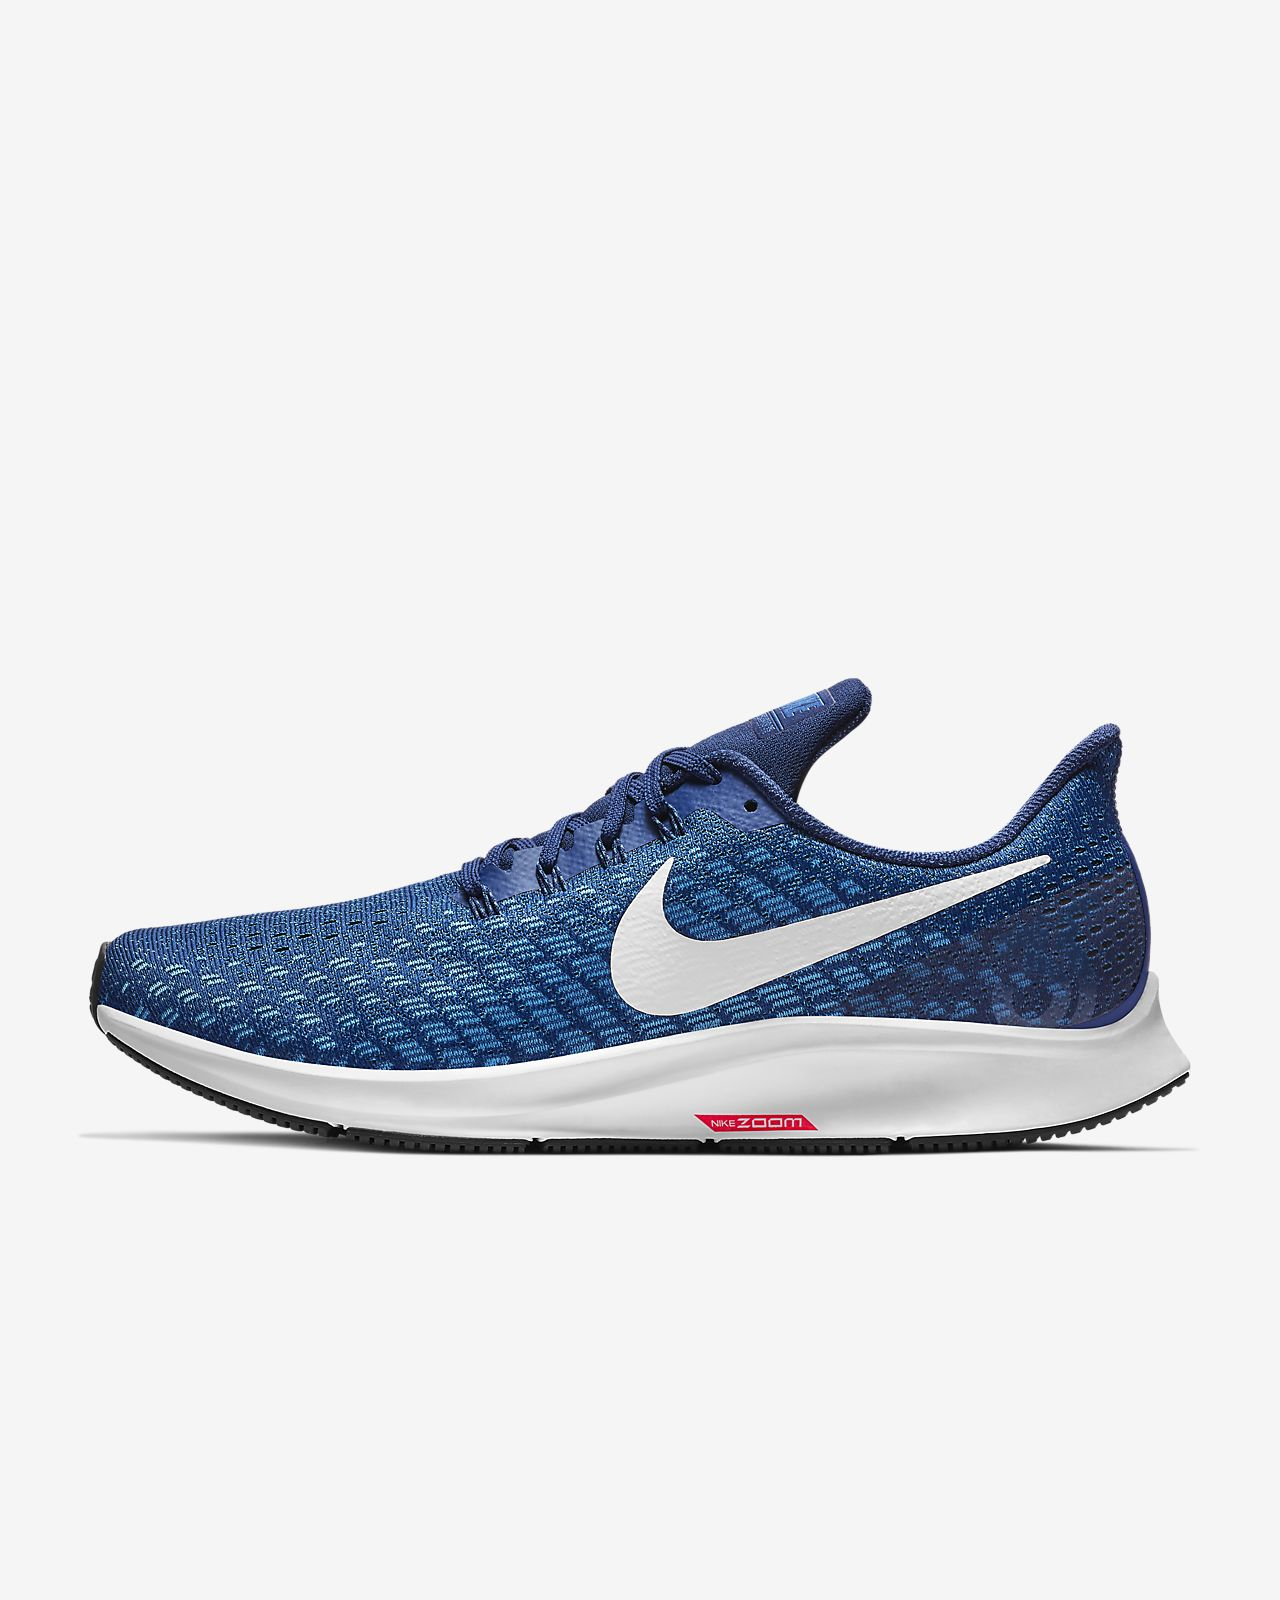 low priced efab7 19d92 ... Nike Air Zoom Pegasus 35 Herren-Laufschuh